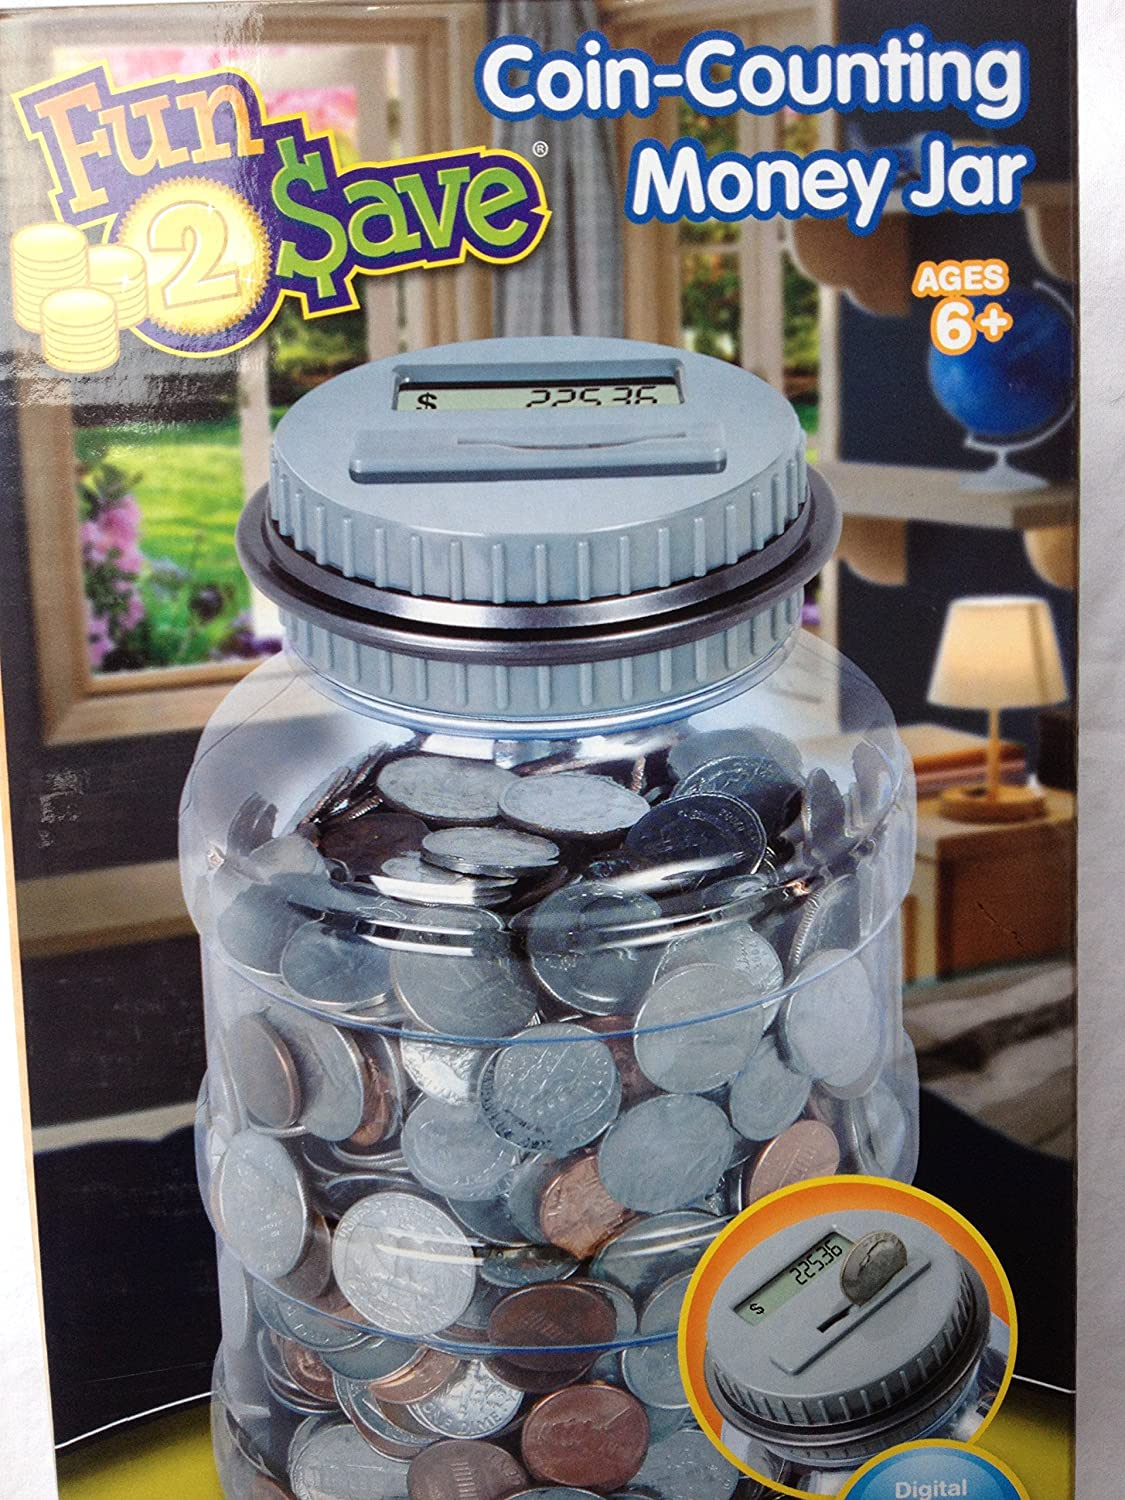 Fun2 Save Coin Money Digital Counting Counting Counting Jar bank 648fdb